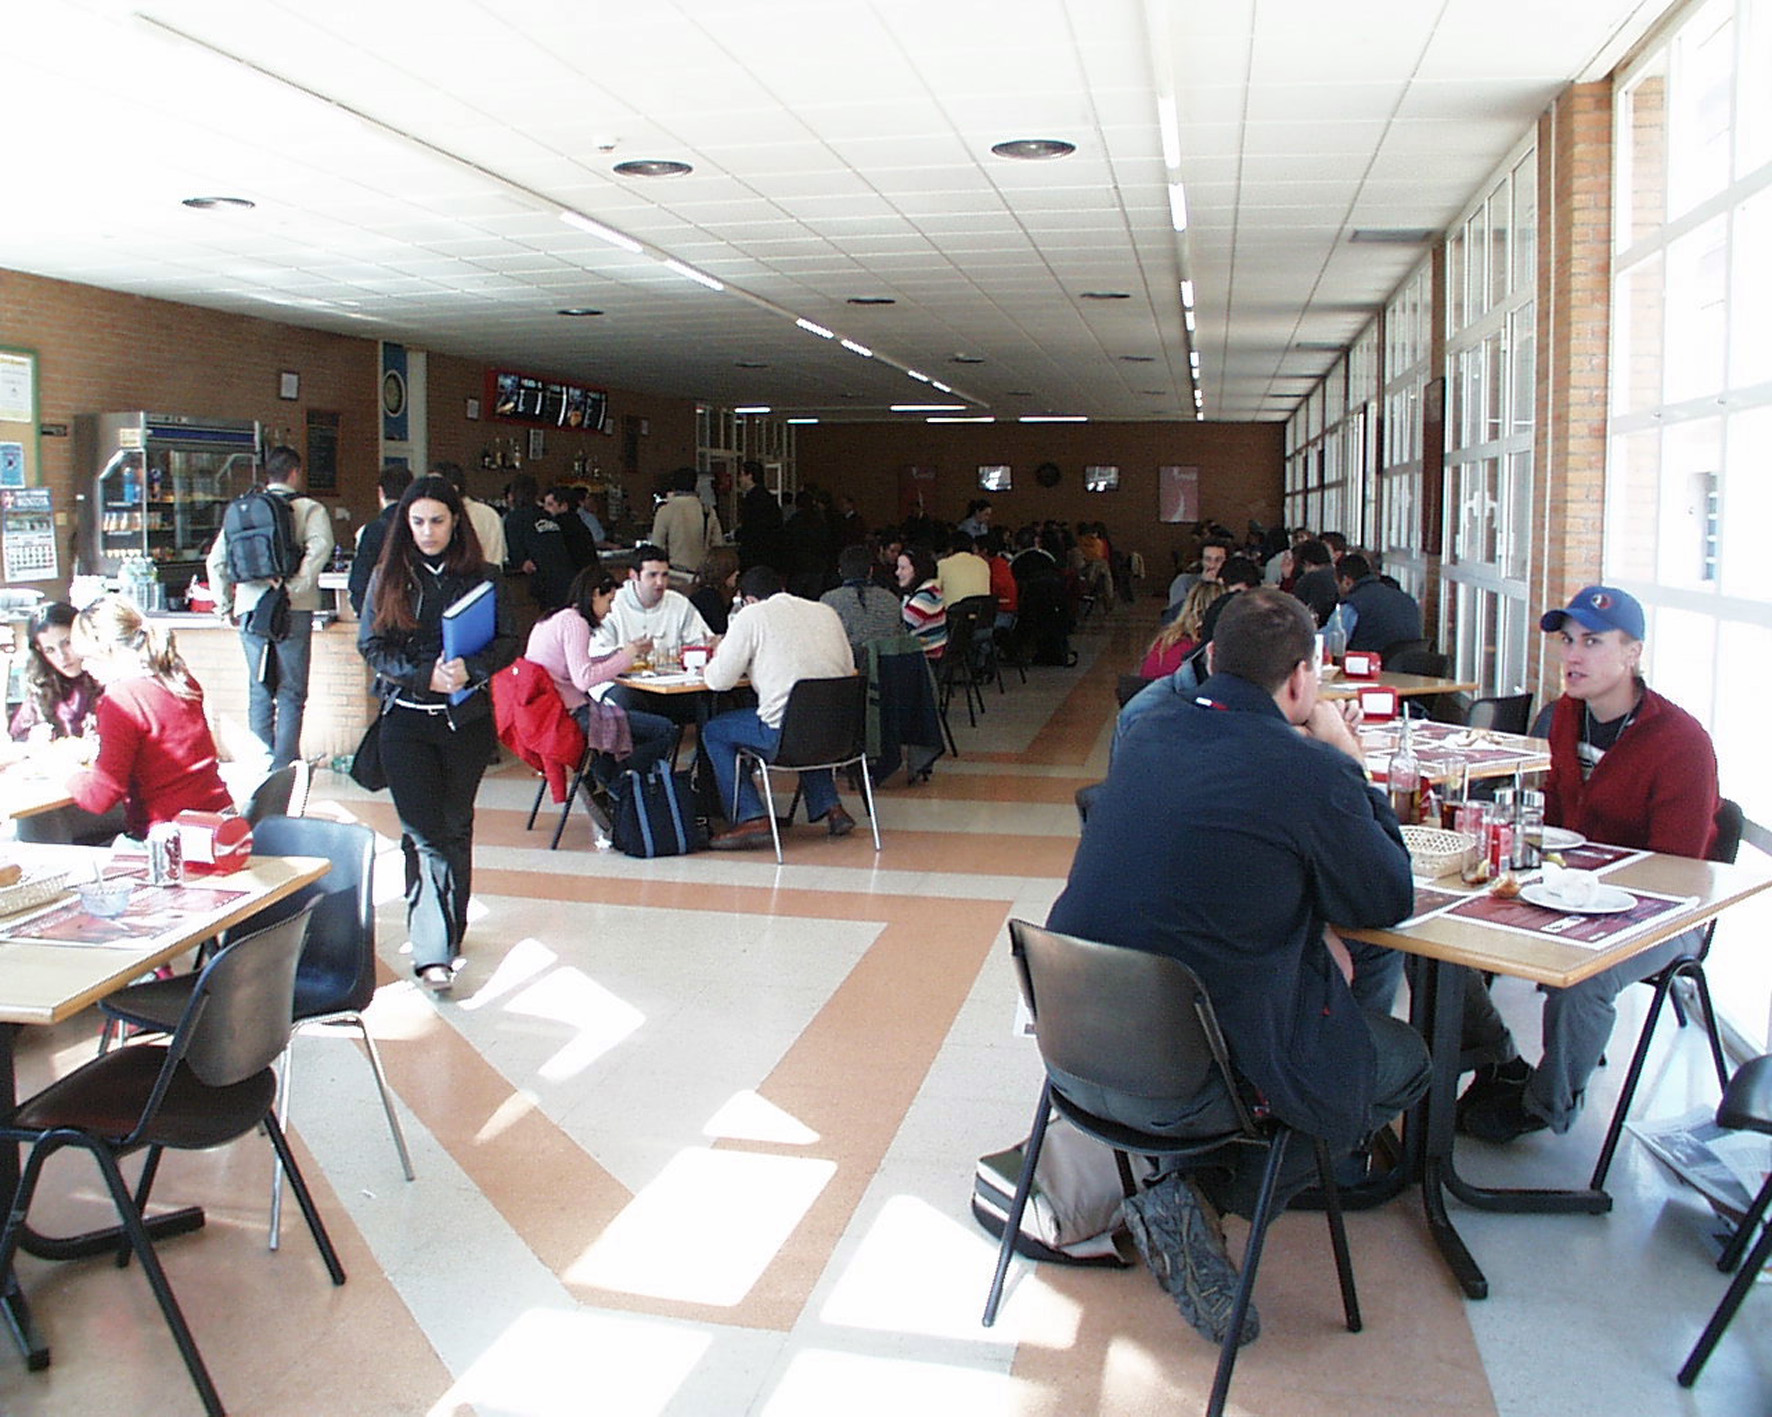 Image of the Humanities Building cafeteria